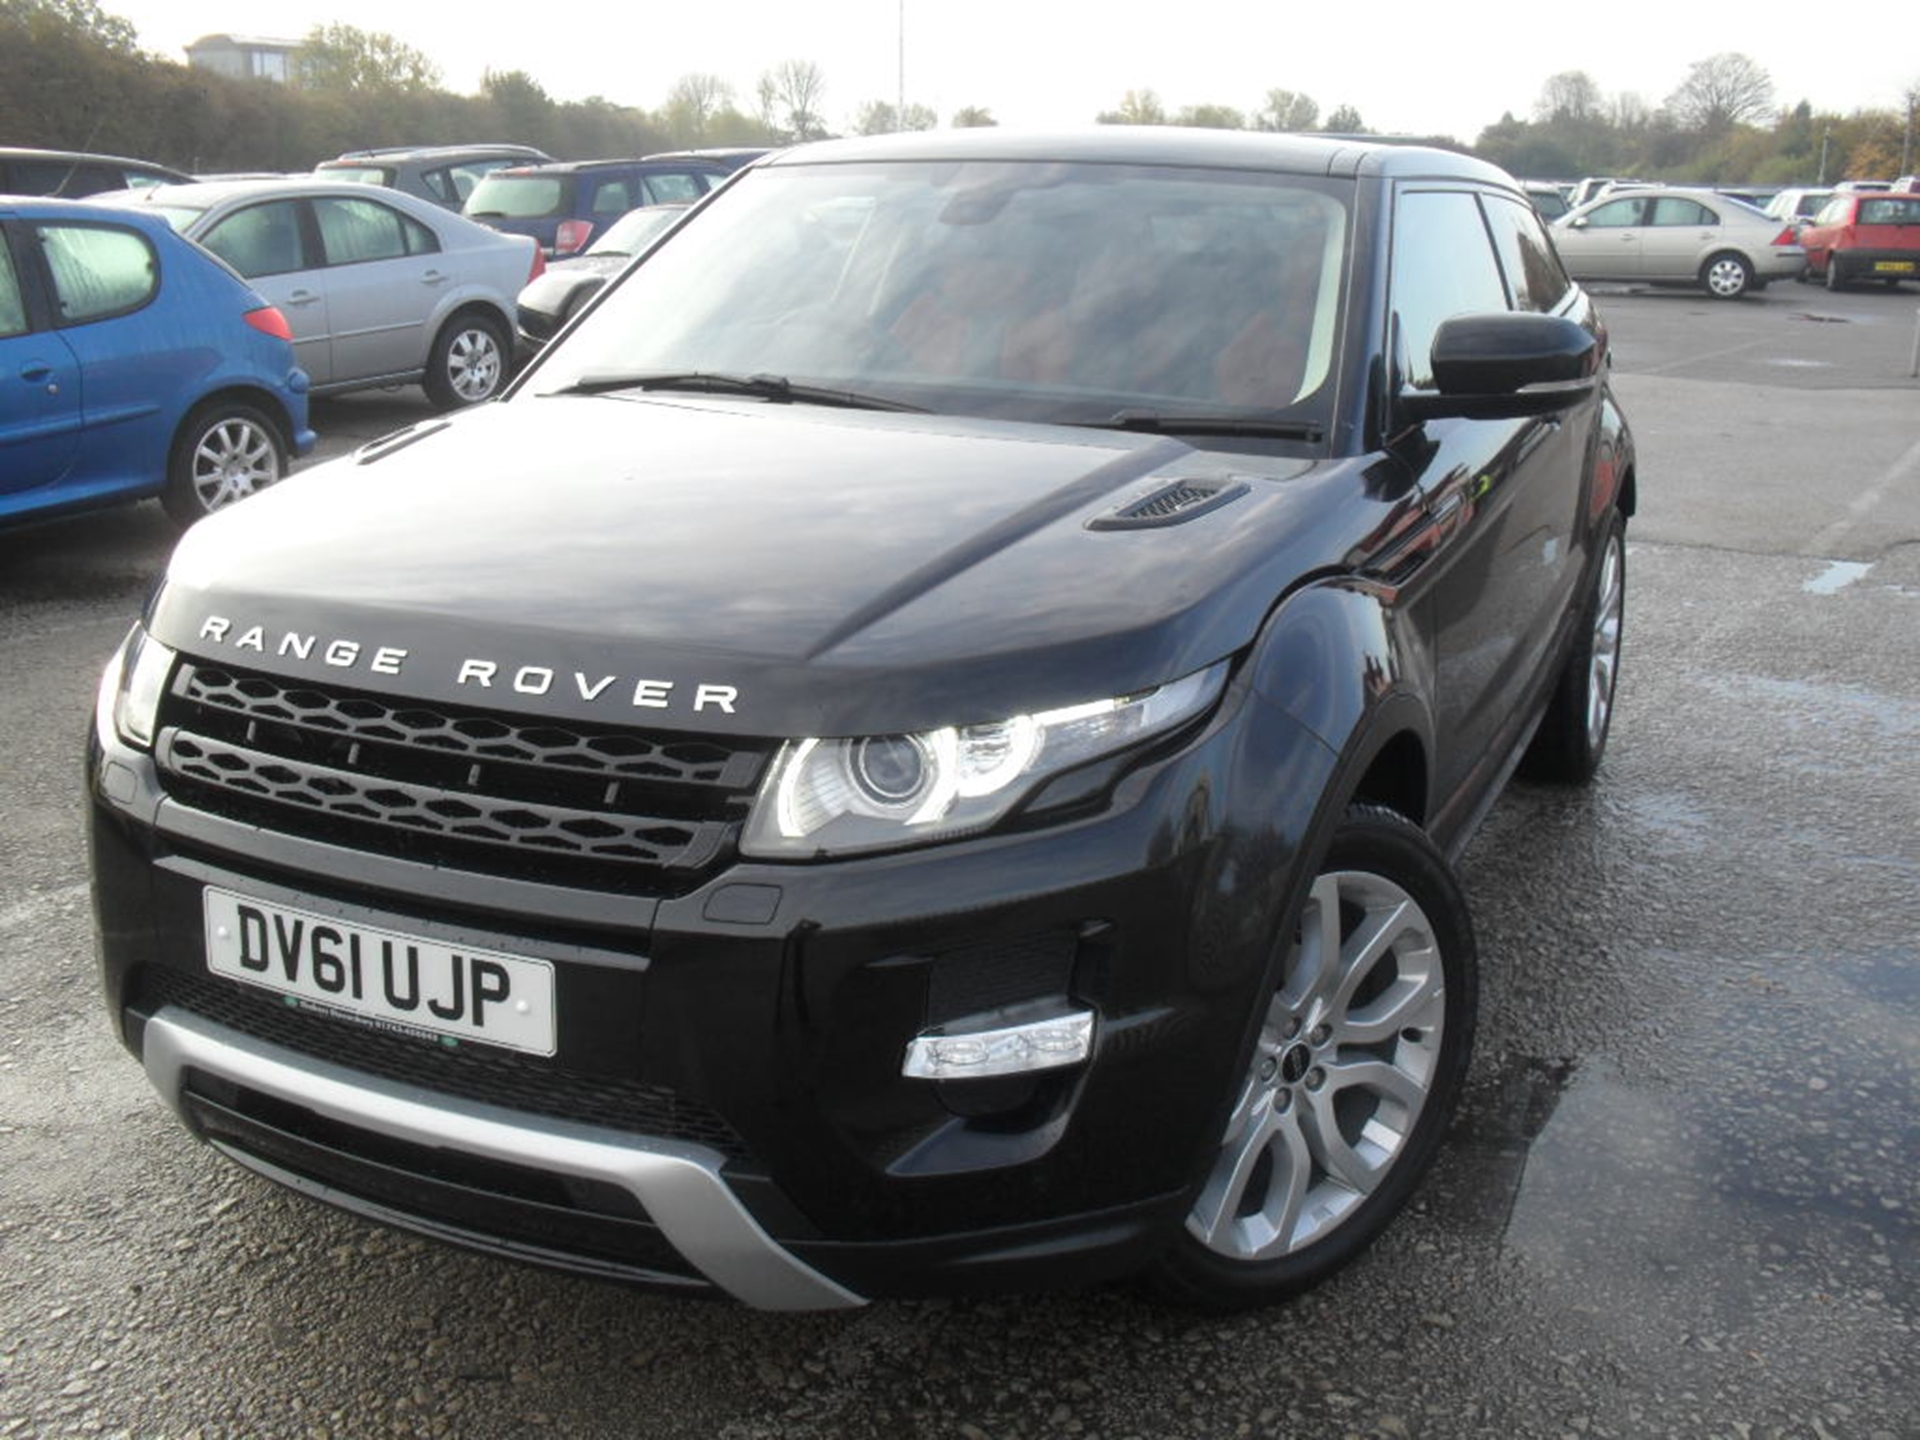 FIRST EVOQUE TO BE SOLD AT AUCTION